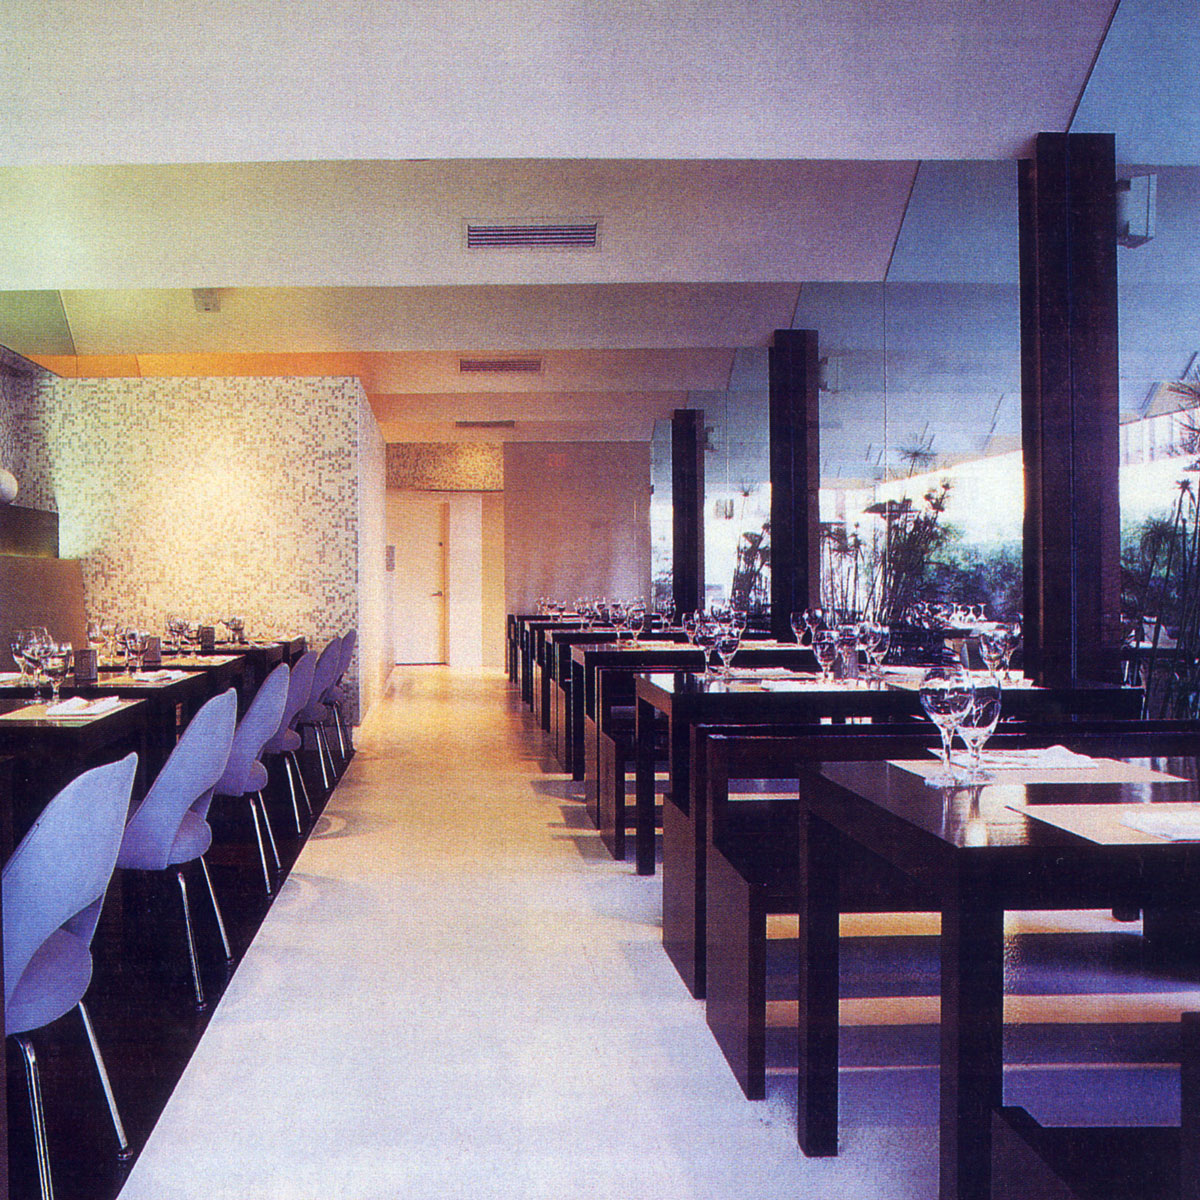 Restaurant Los Angeles Interior Design